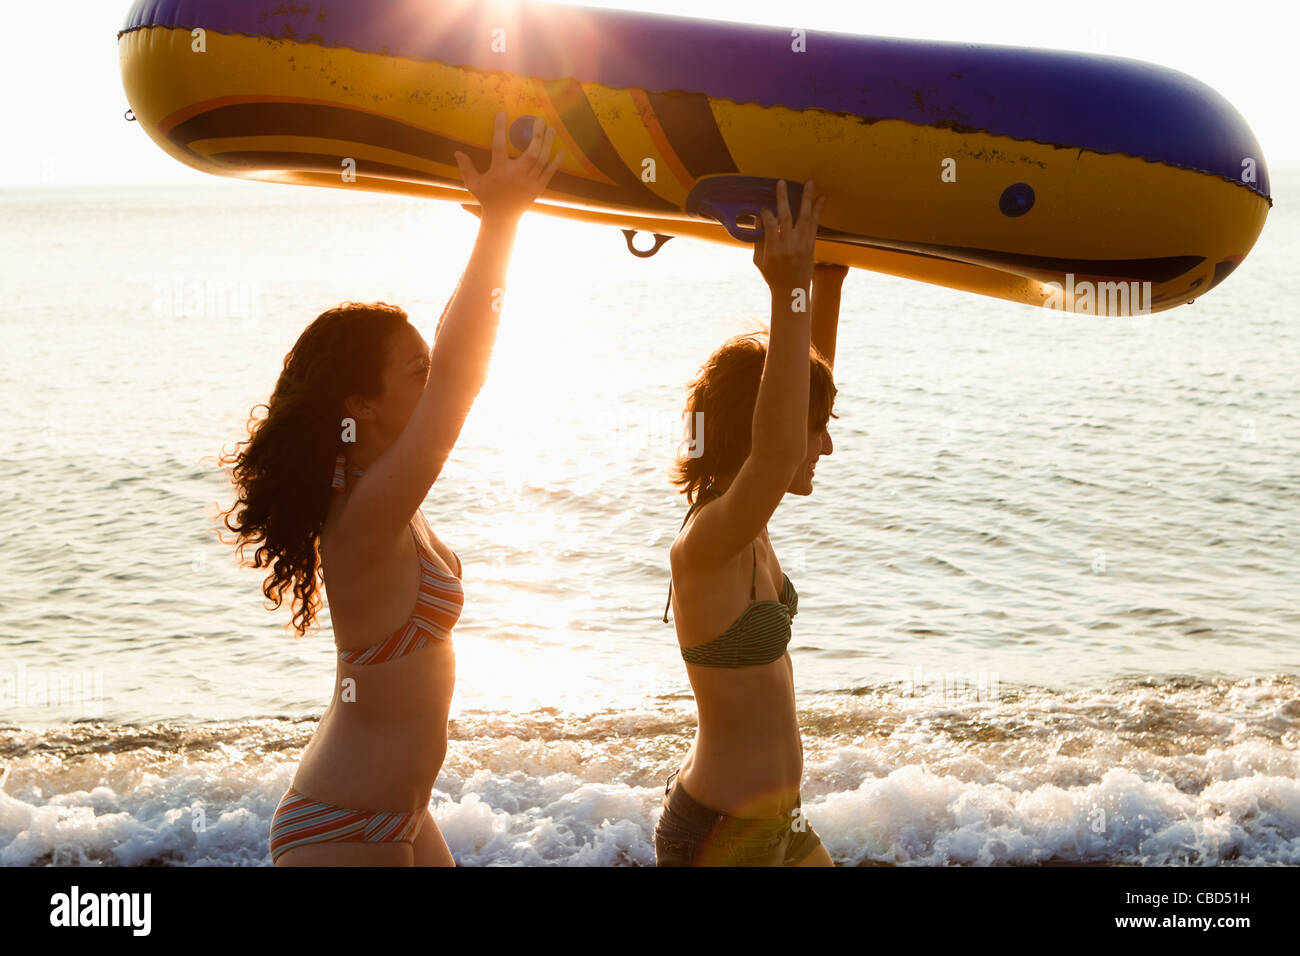 Les femmes exerçant inflatable boat on beach Photo Stock